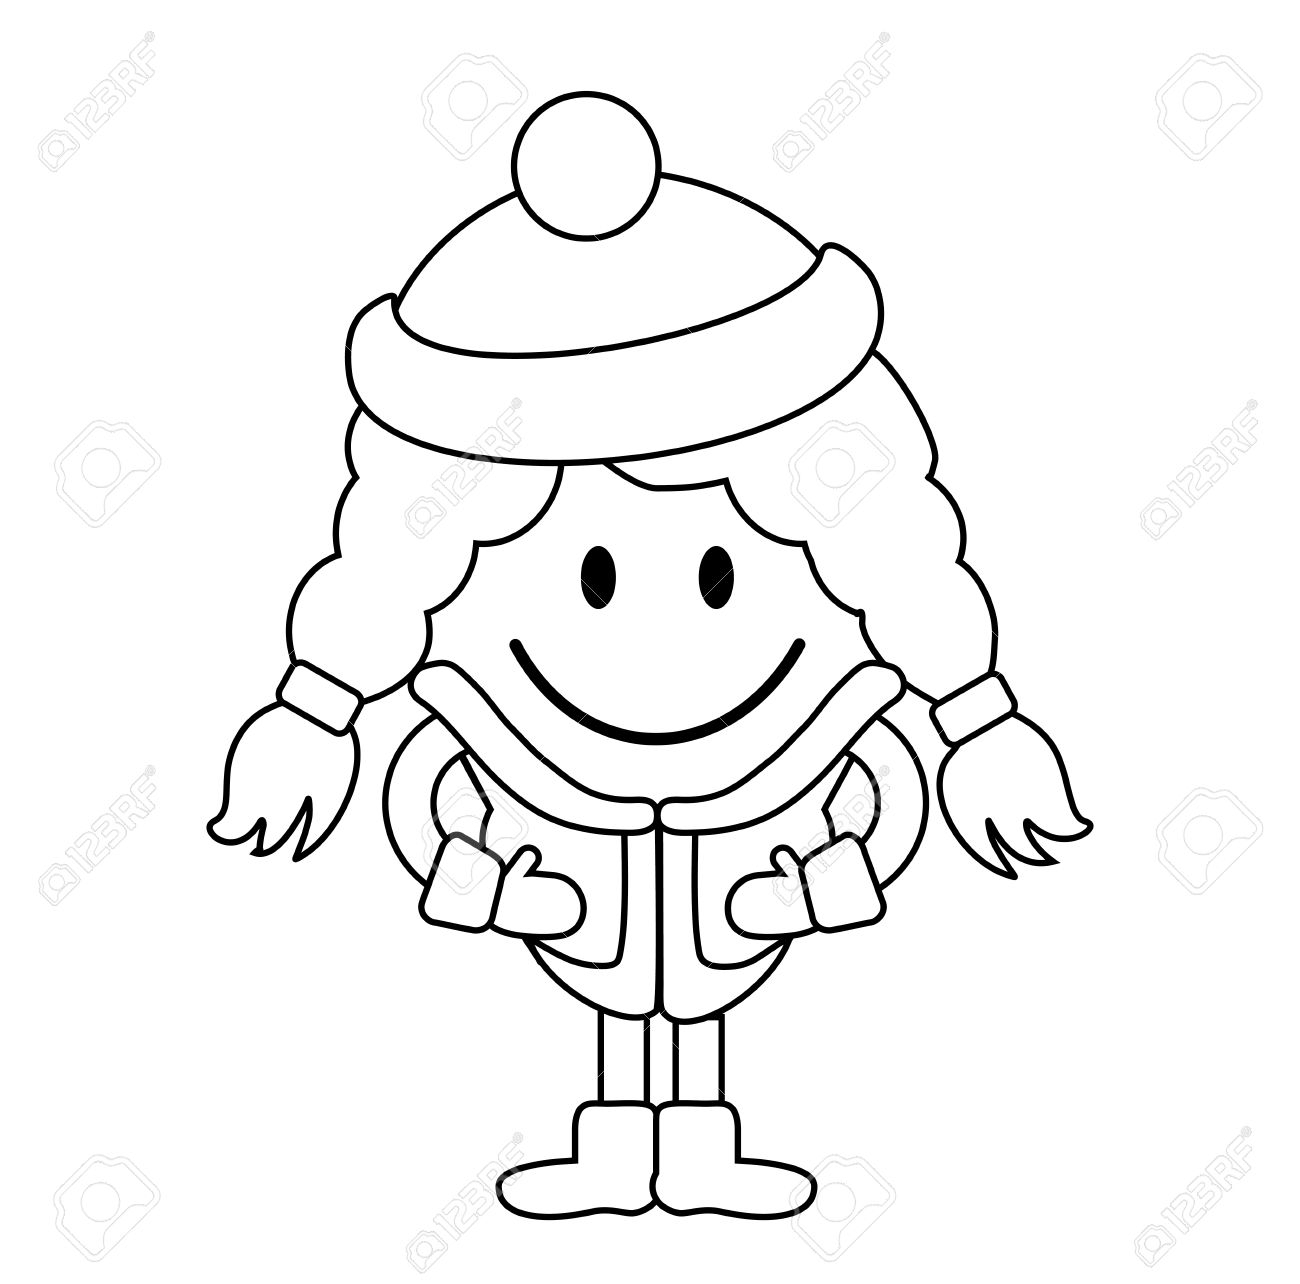 1300x1284 Simple Drawing Of Little Girl Cute Little Girl In Winter Clothes